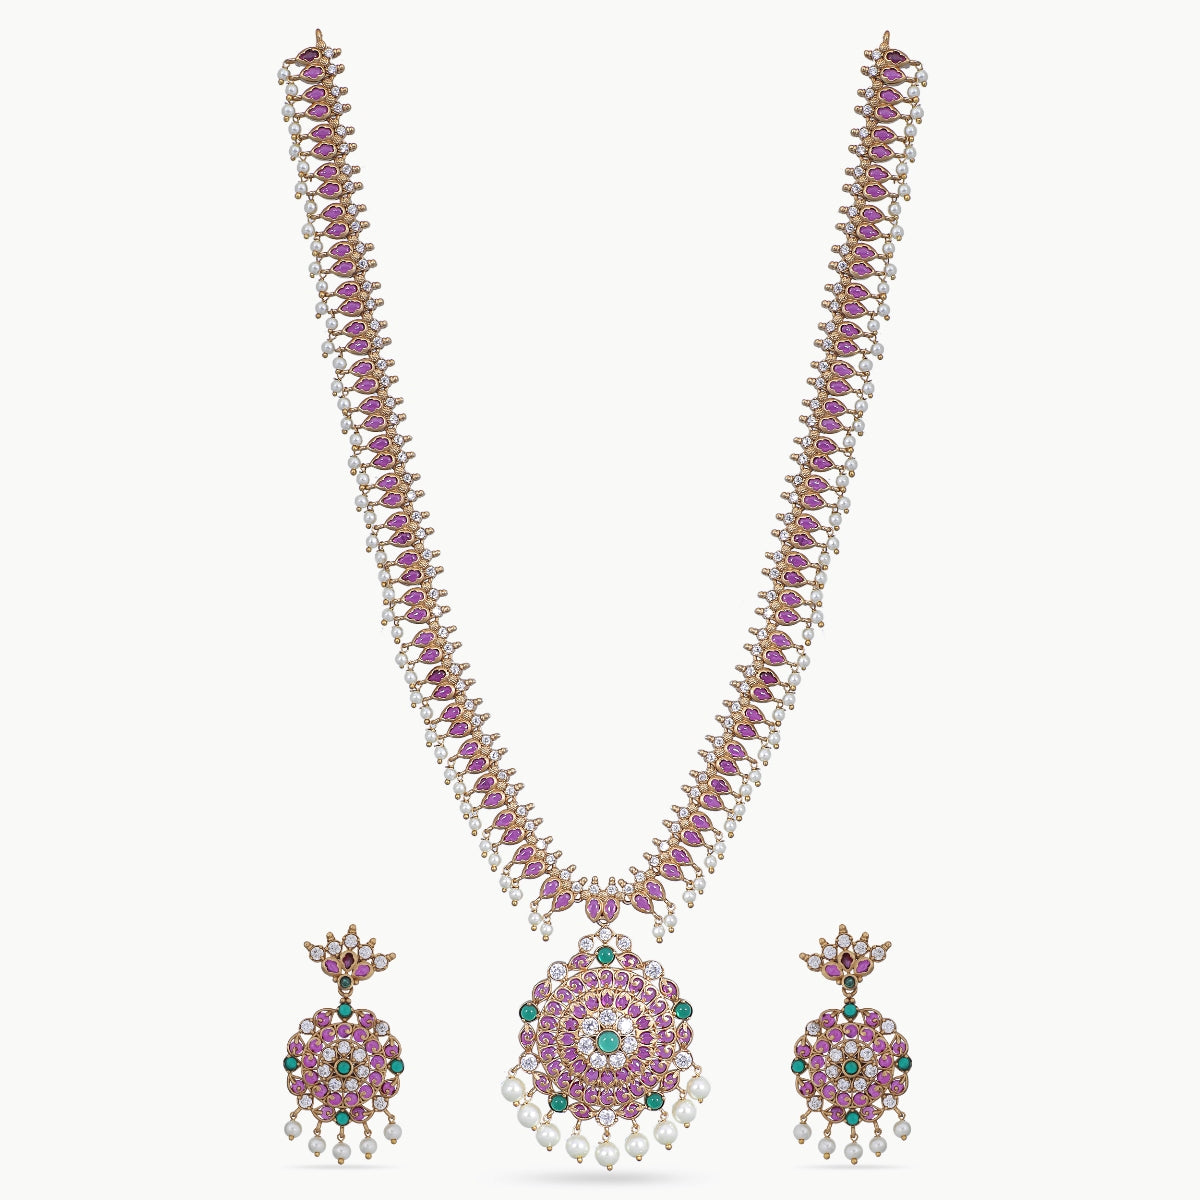 Varni Antique Long Necklace Set